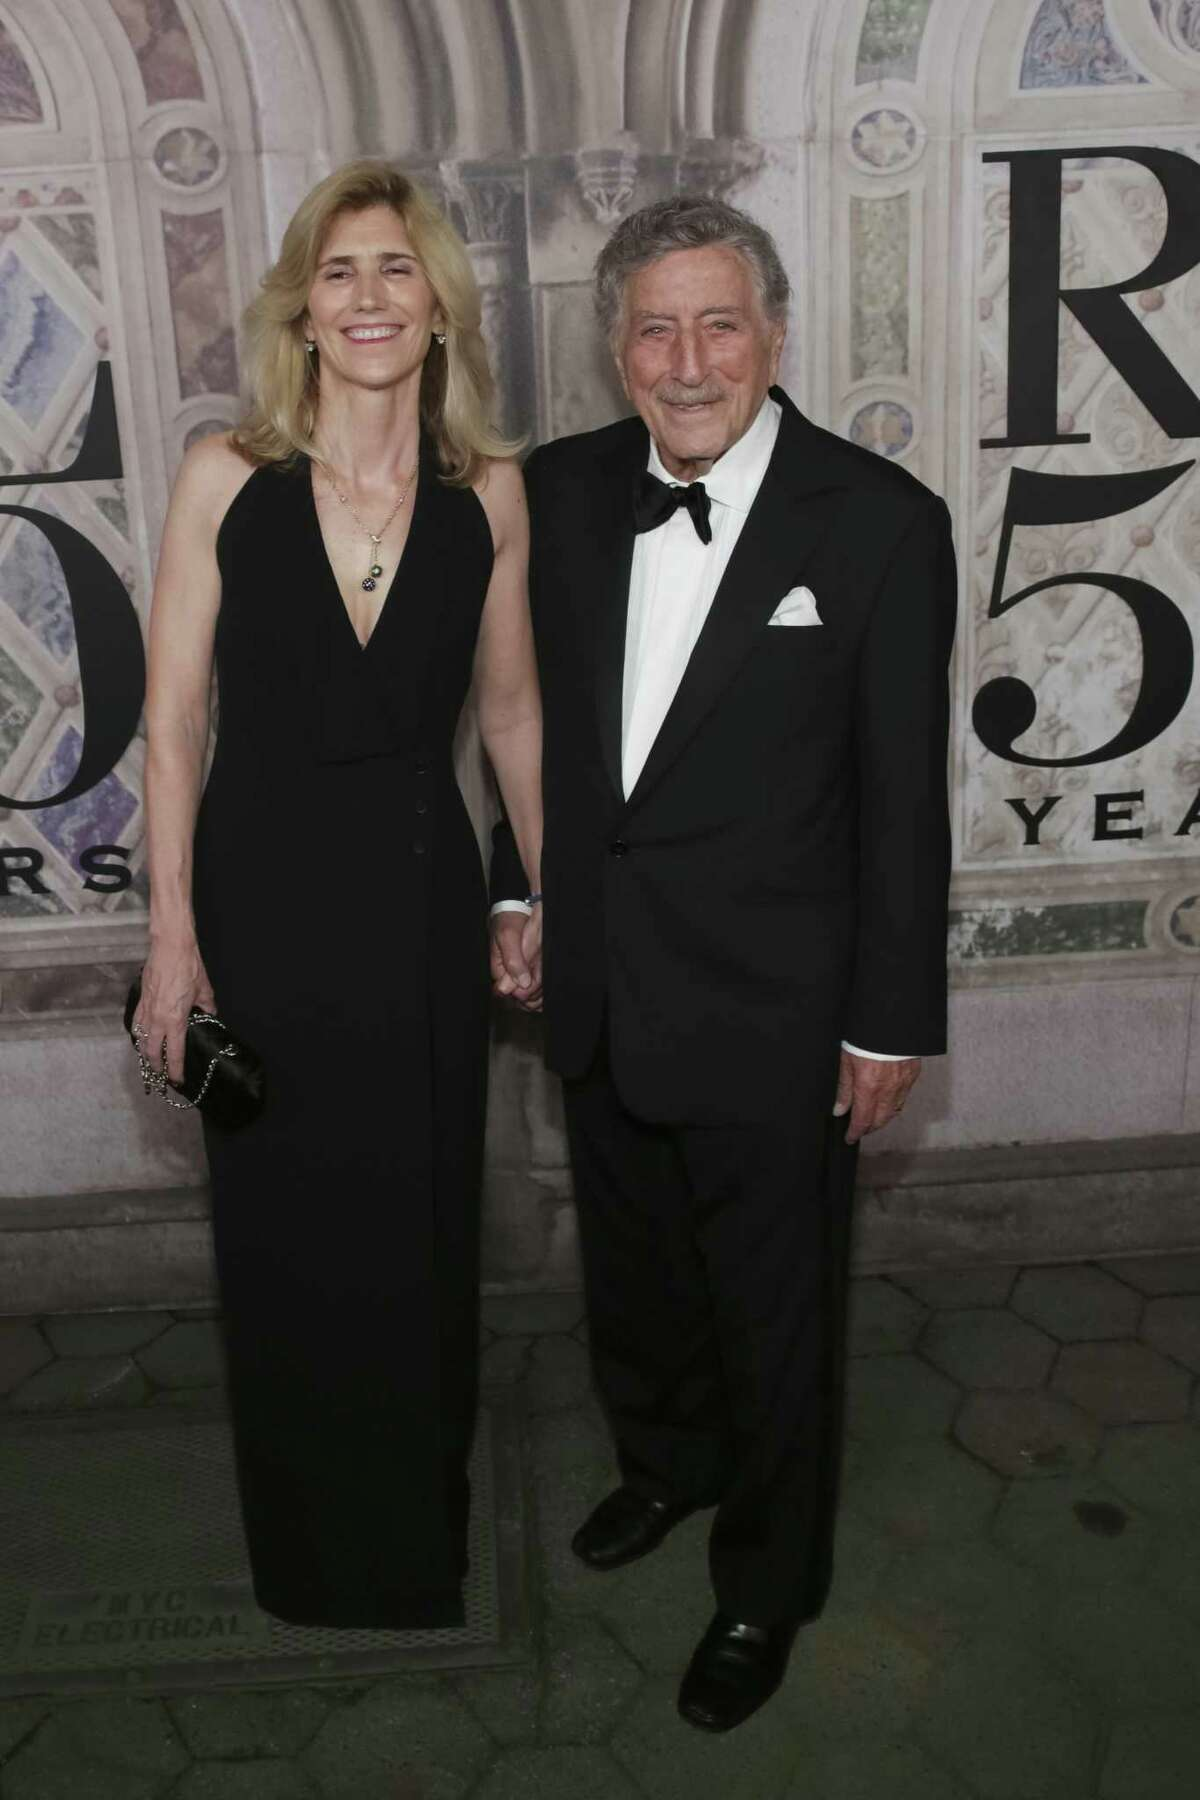 Tony Bennett and his wife Susan Crow Benedetto at a fashion event in New York last year.